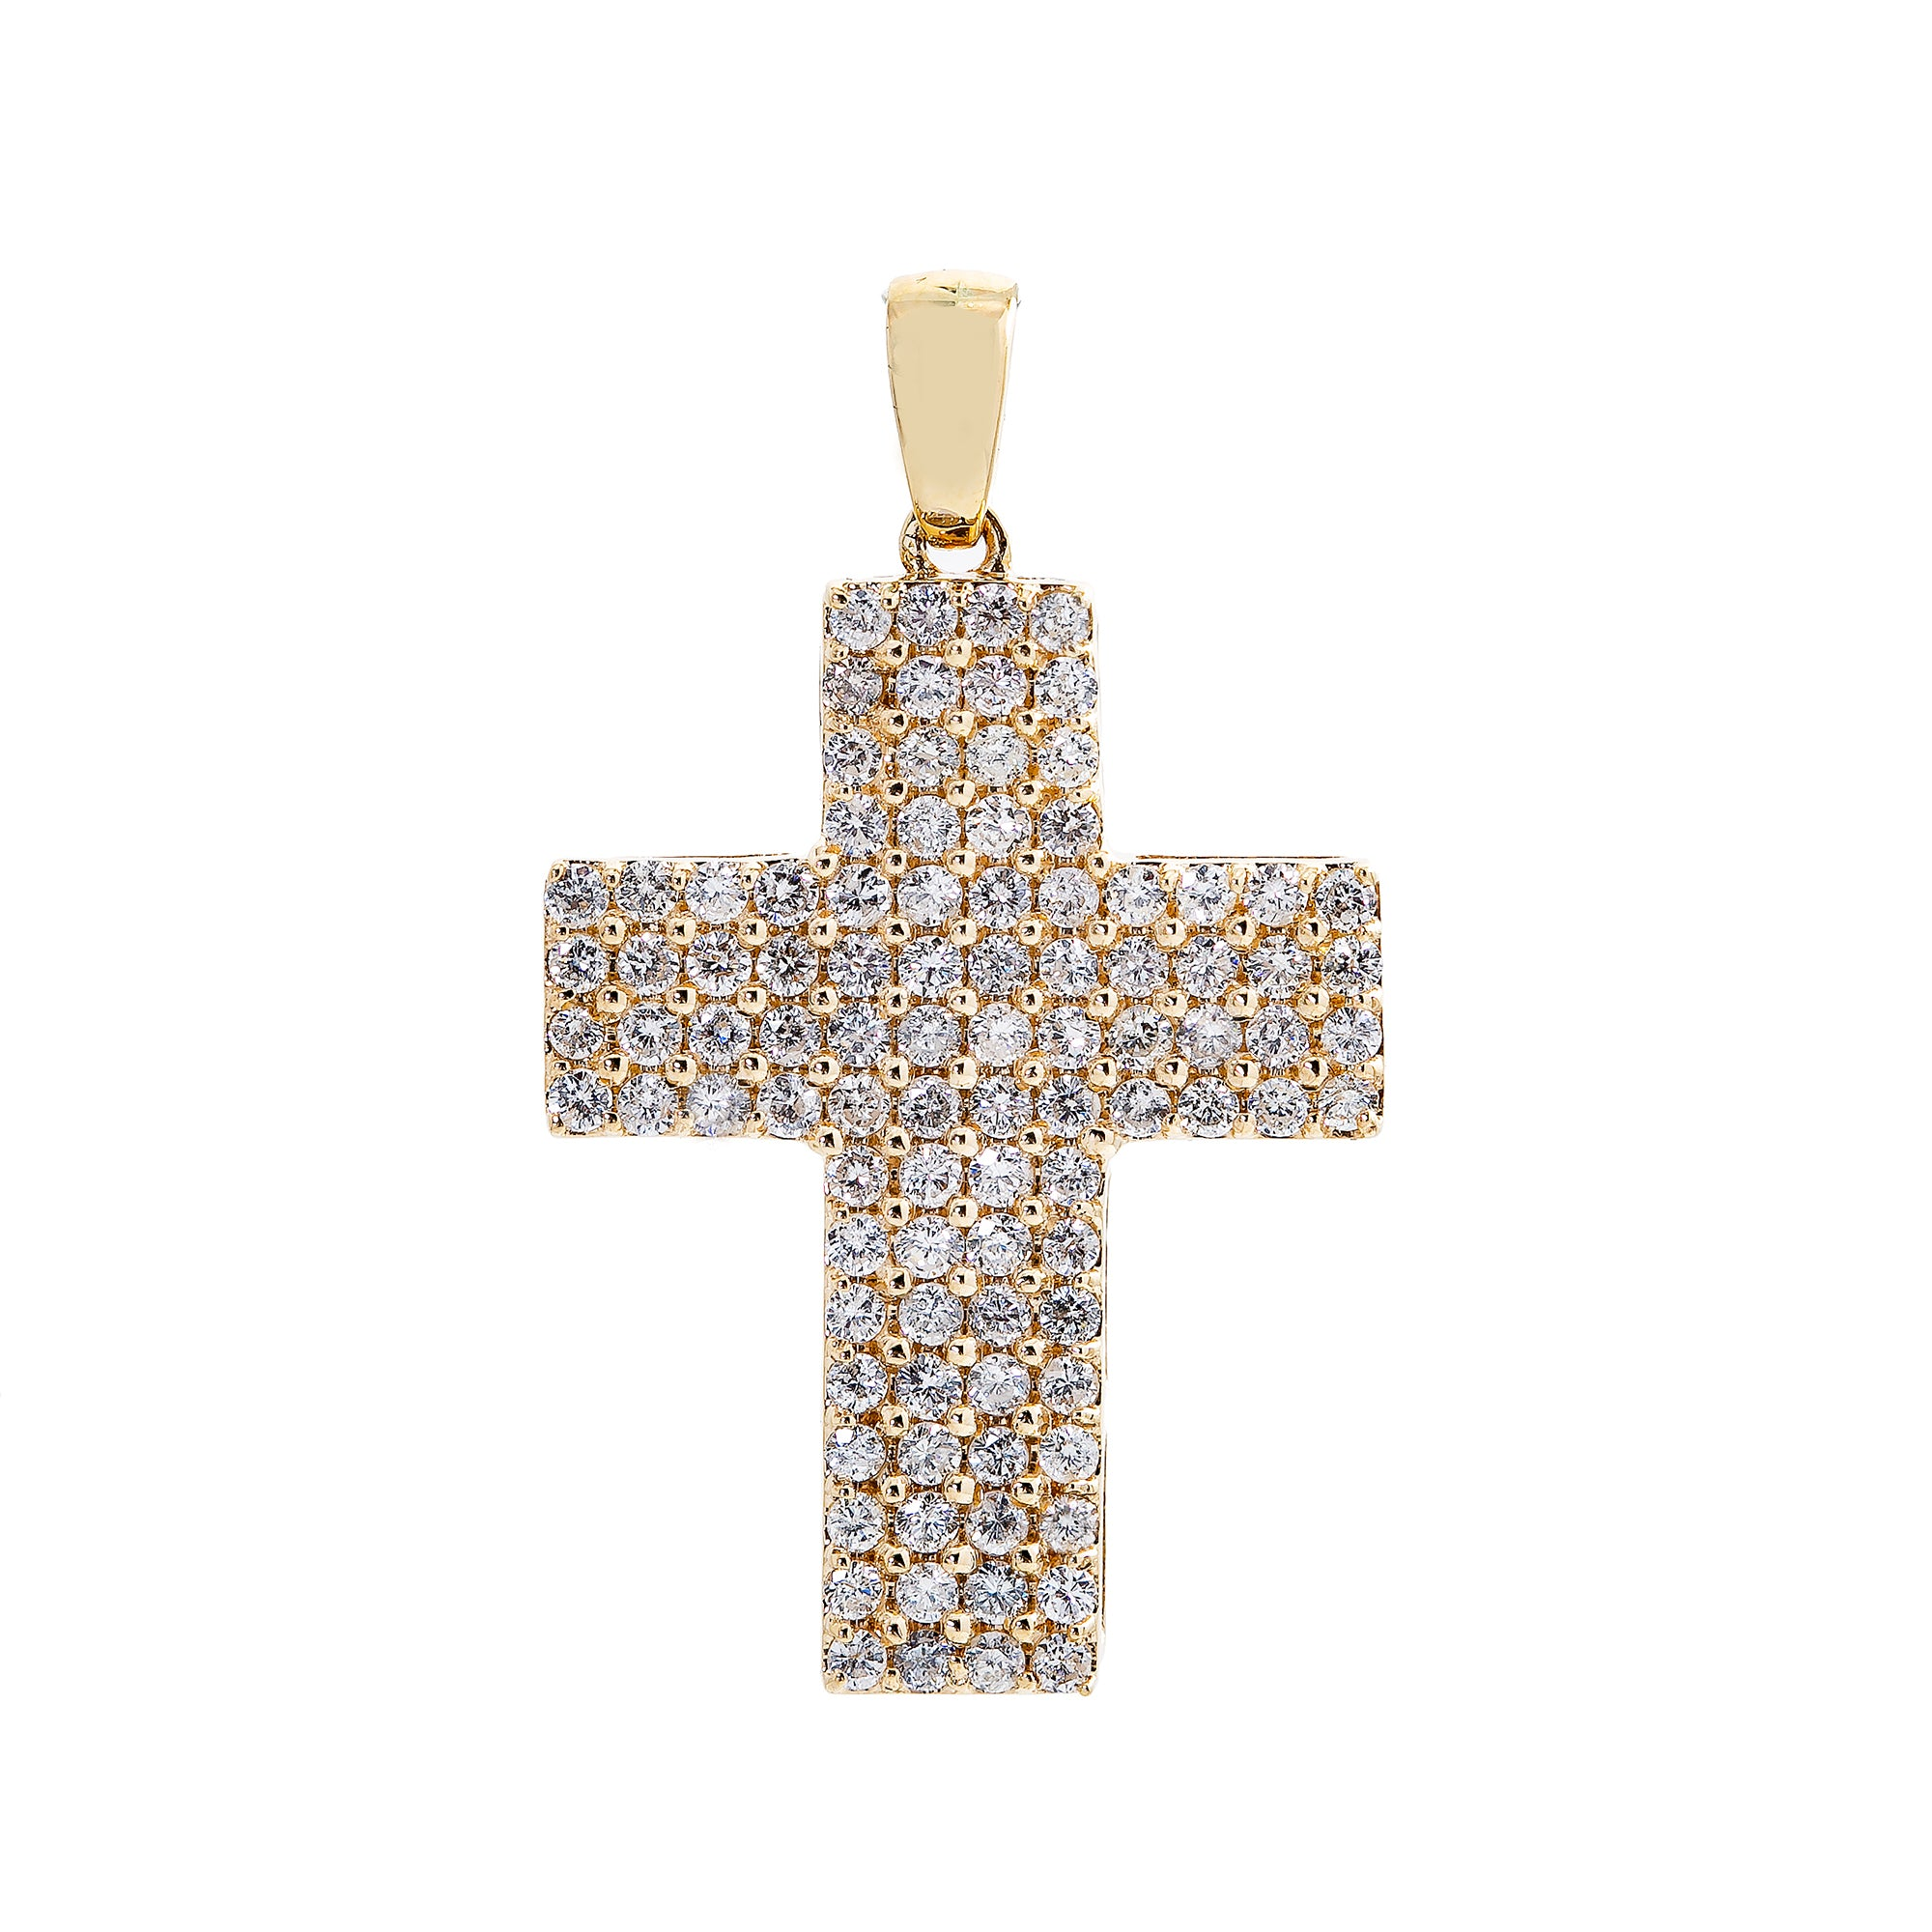 Unisex 14K Yellow Gold Cross Pendant with 1.76 CT Diamonds